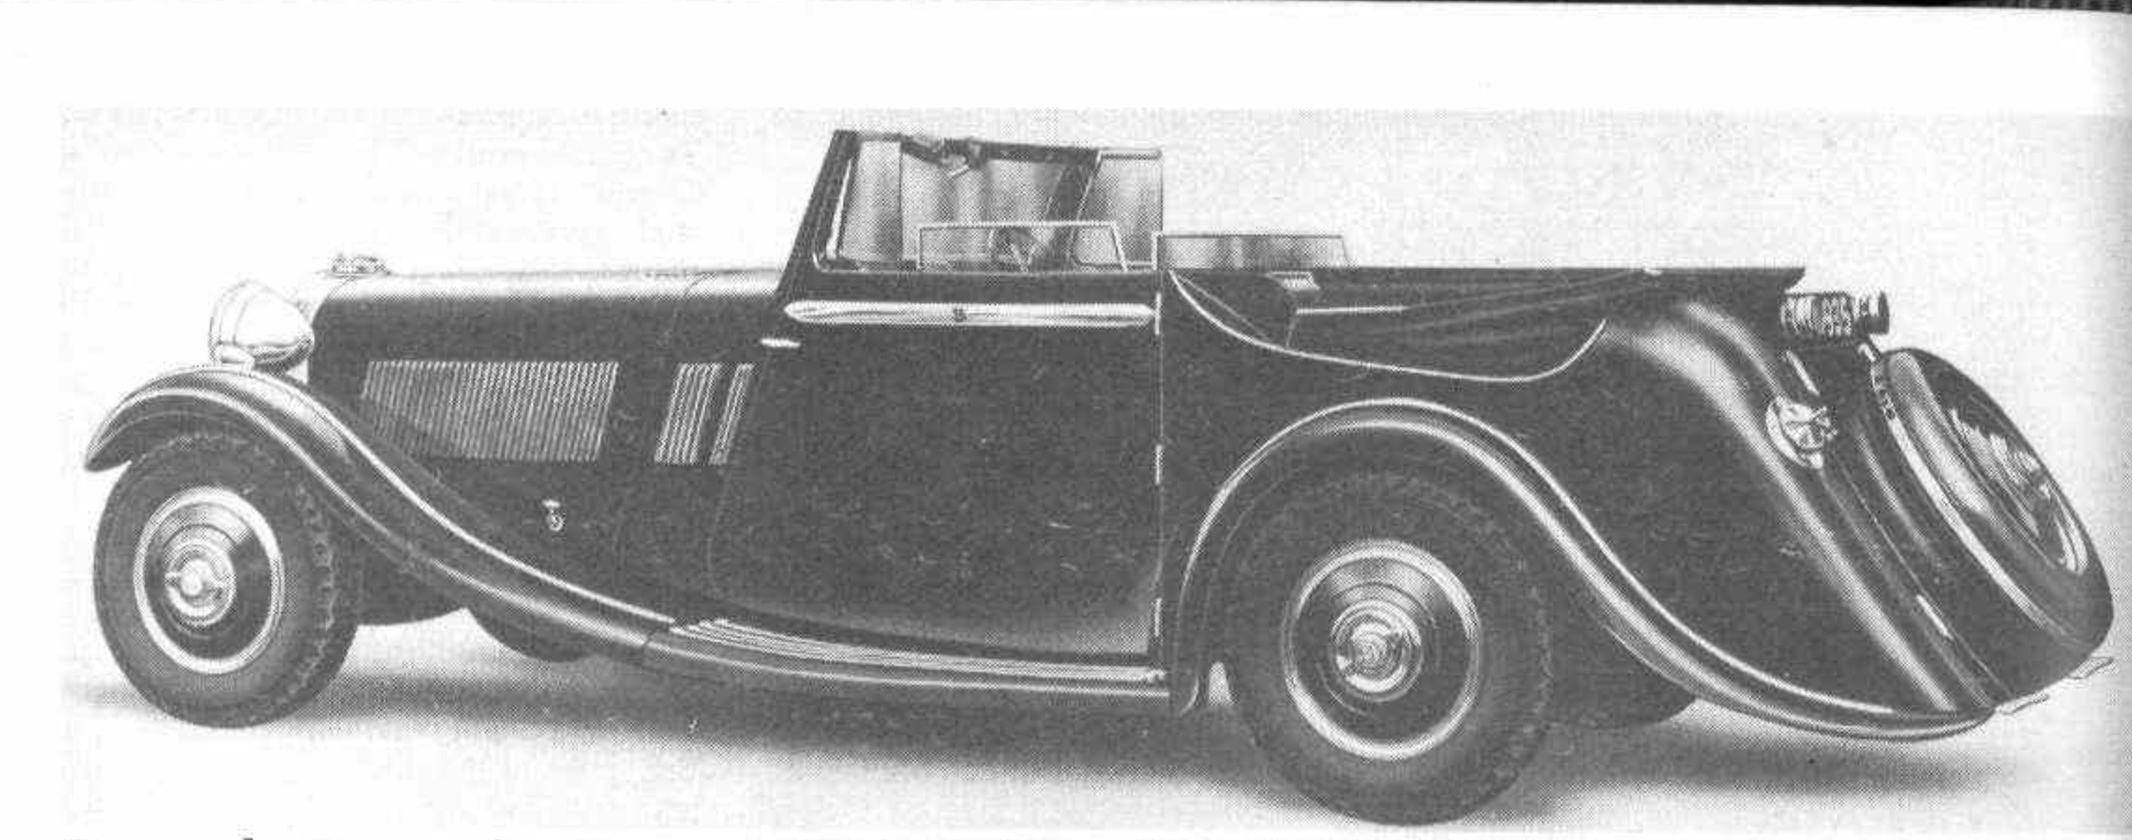 1936 picture of the drophead coupé Brough Superior 4.2 liter eight. The cover folds down flush with the body line. (Picture courtesy motorsportmagazine.com).